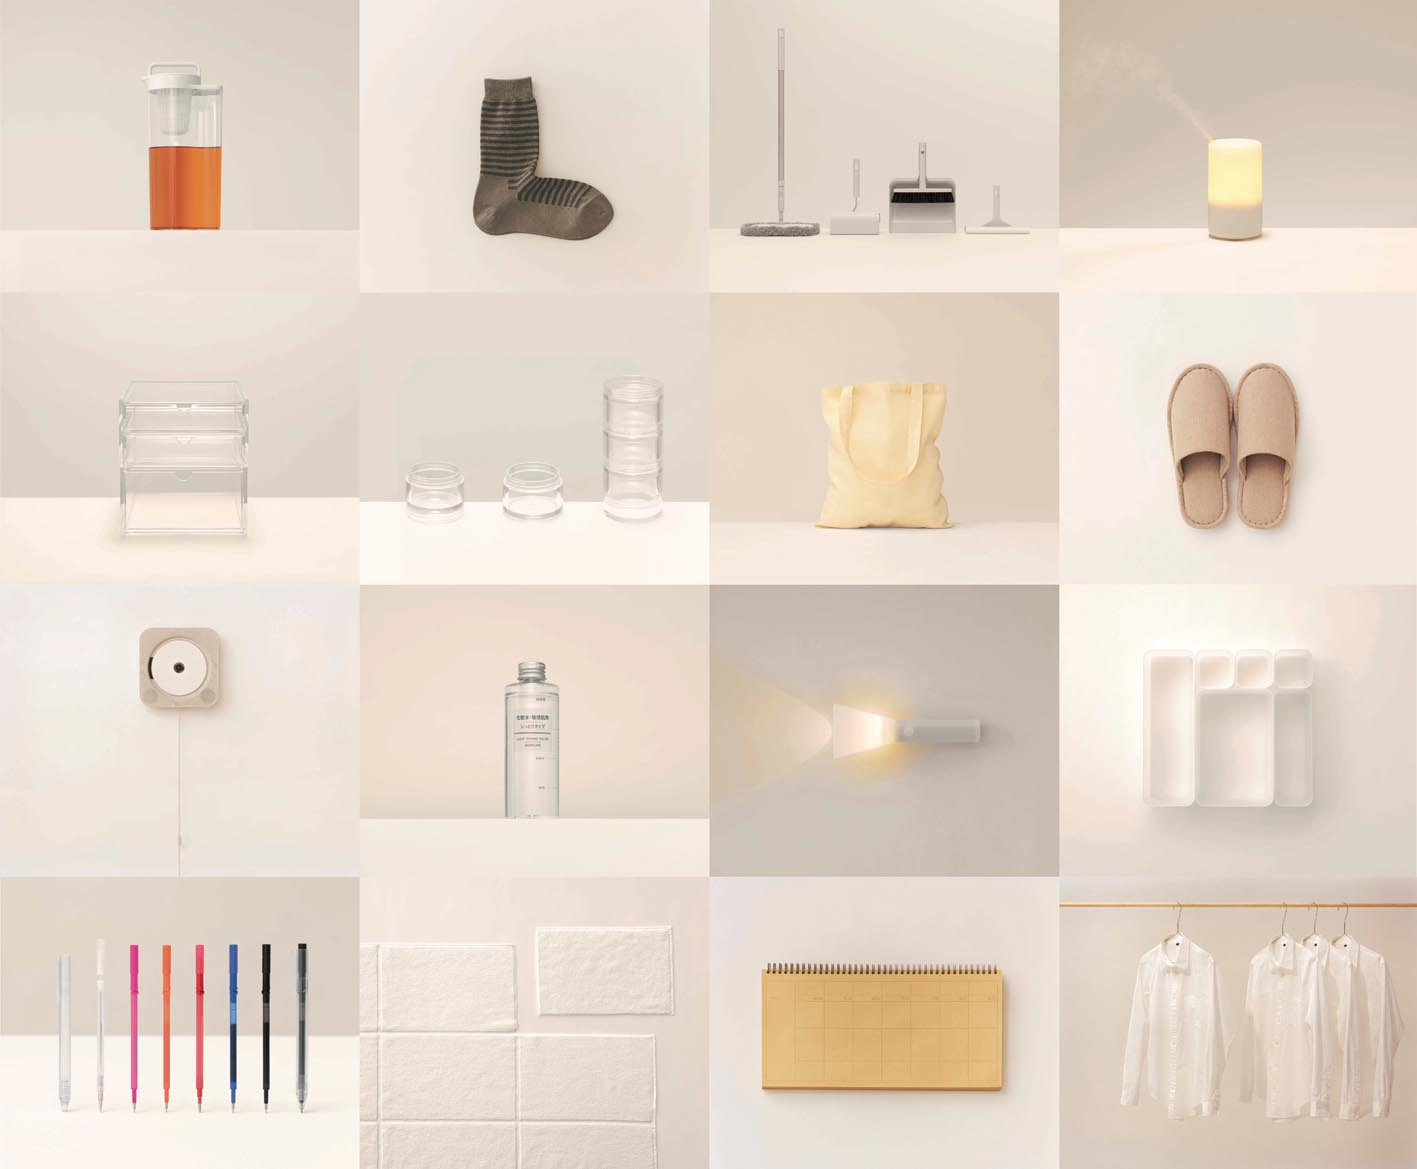 Muji is known for their simple and functional design.